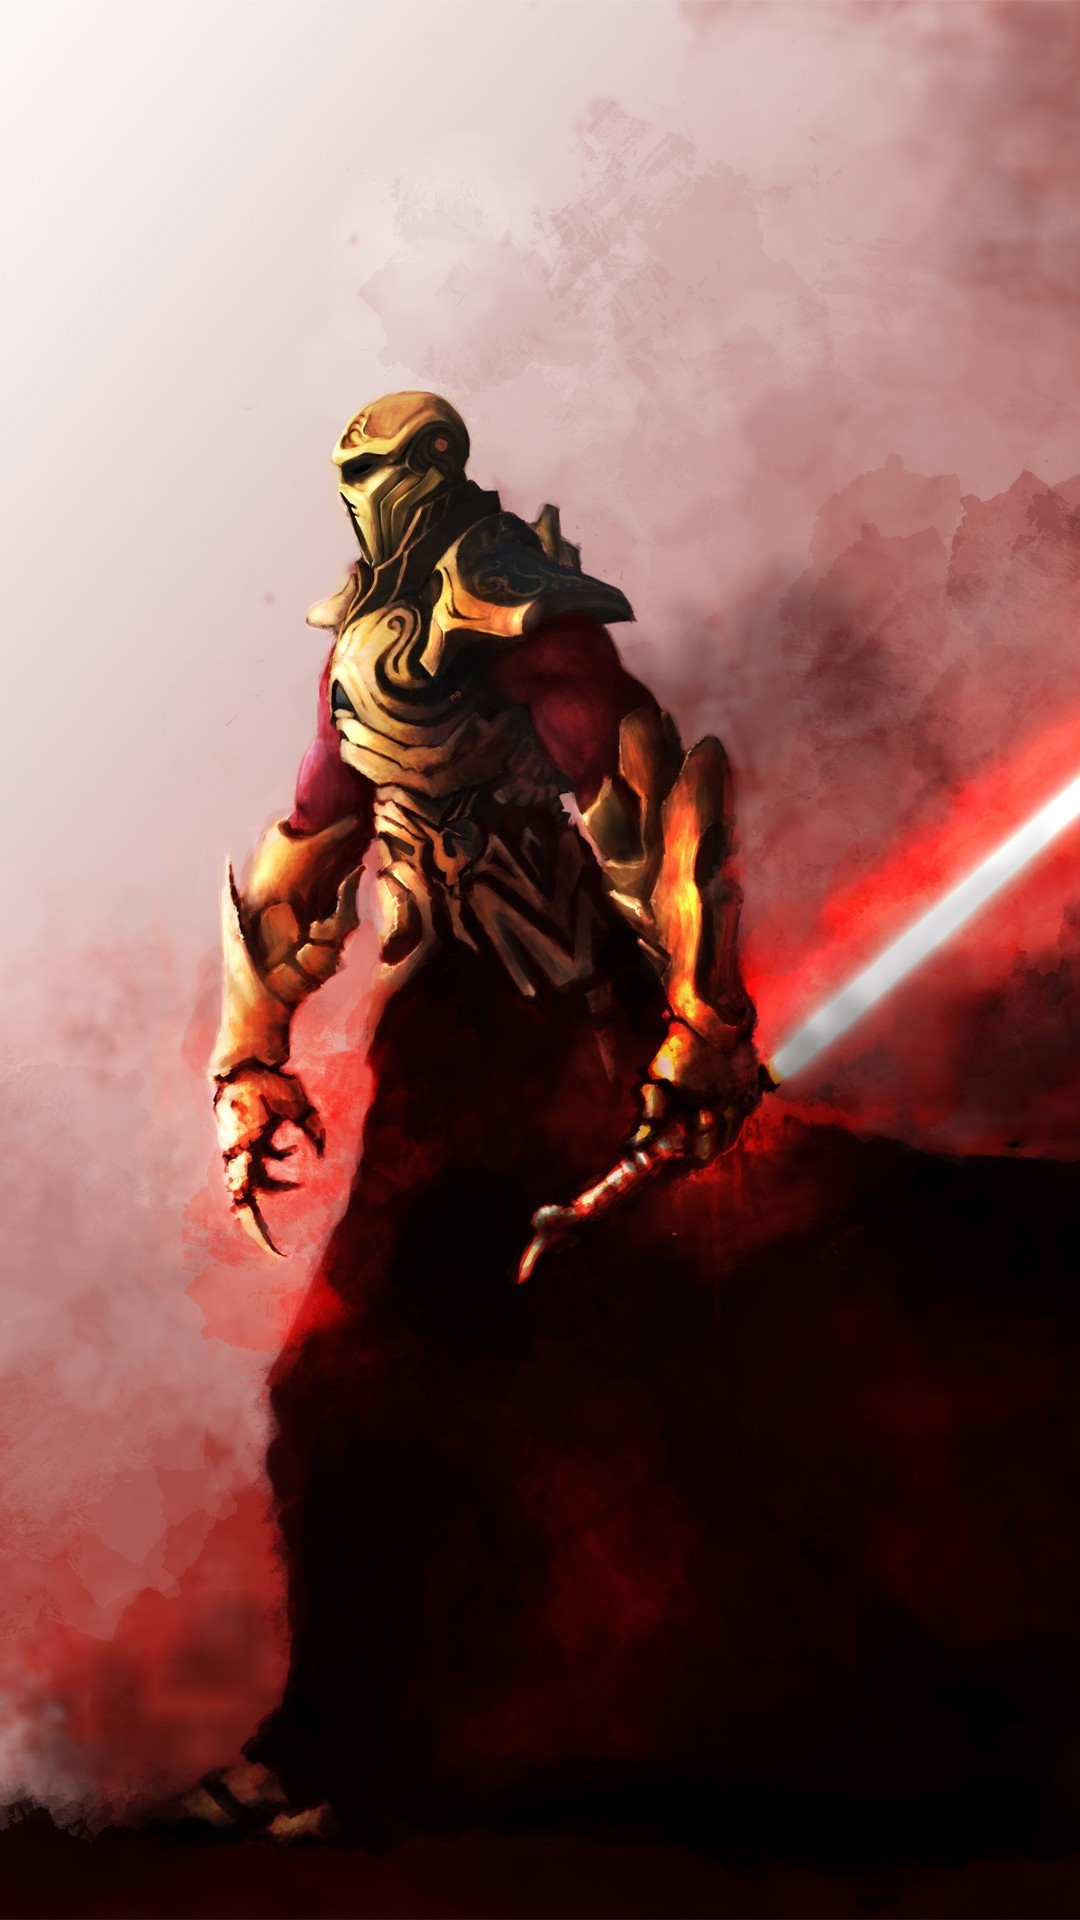 Swtor Sith Wallpaper 73 Images